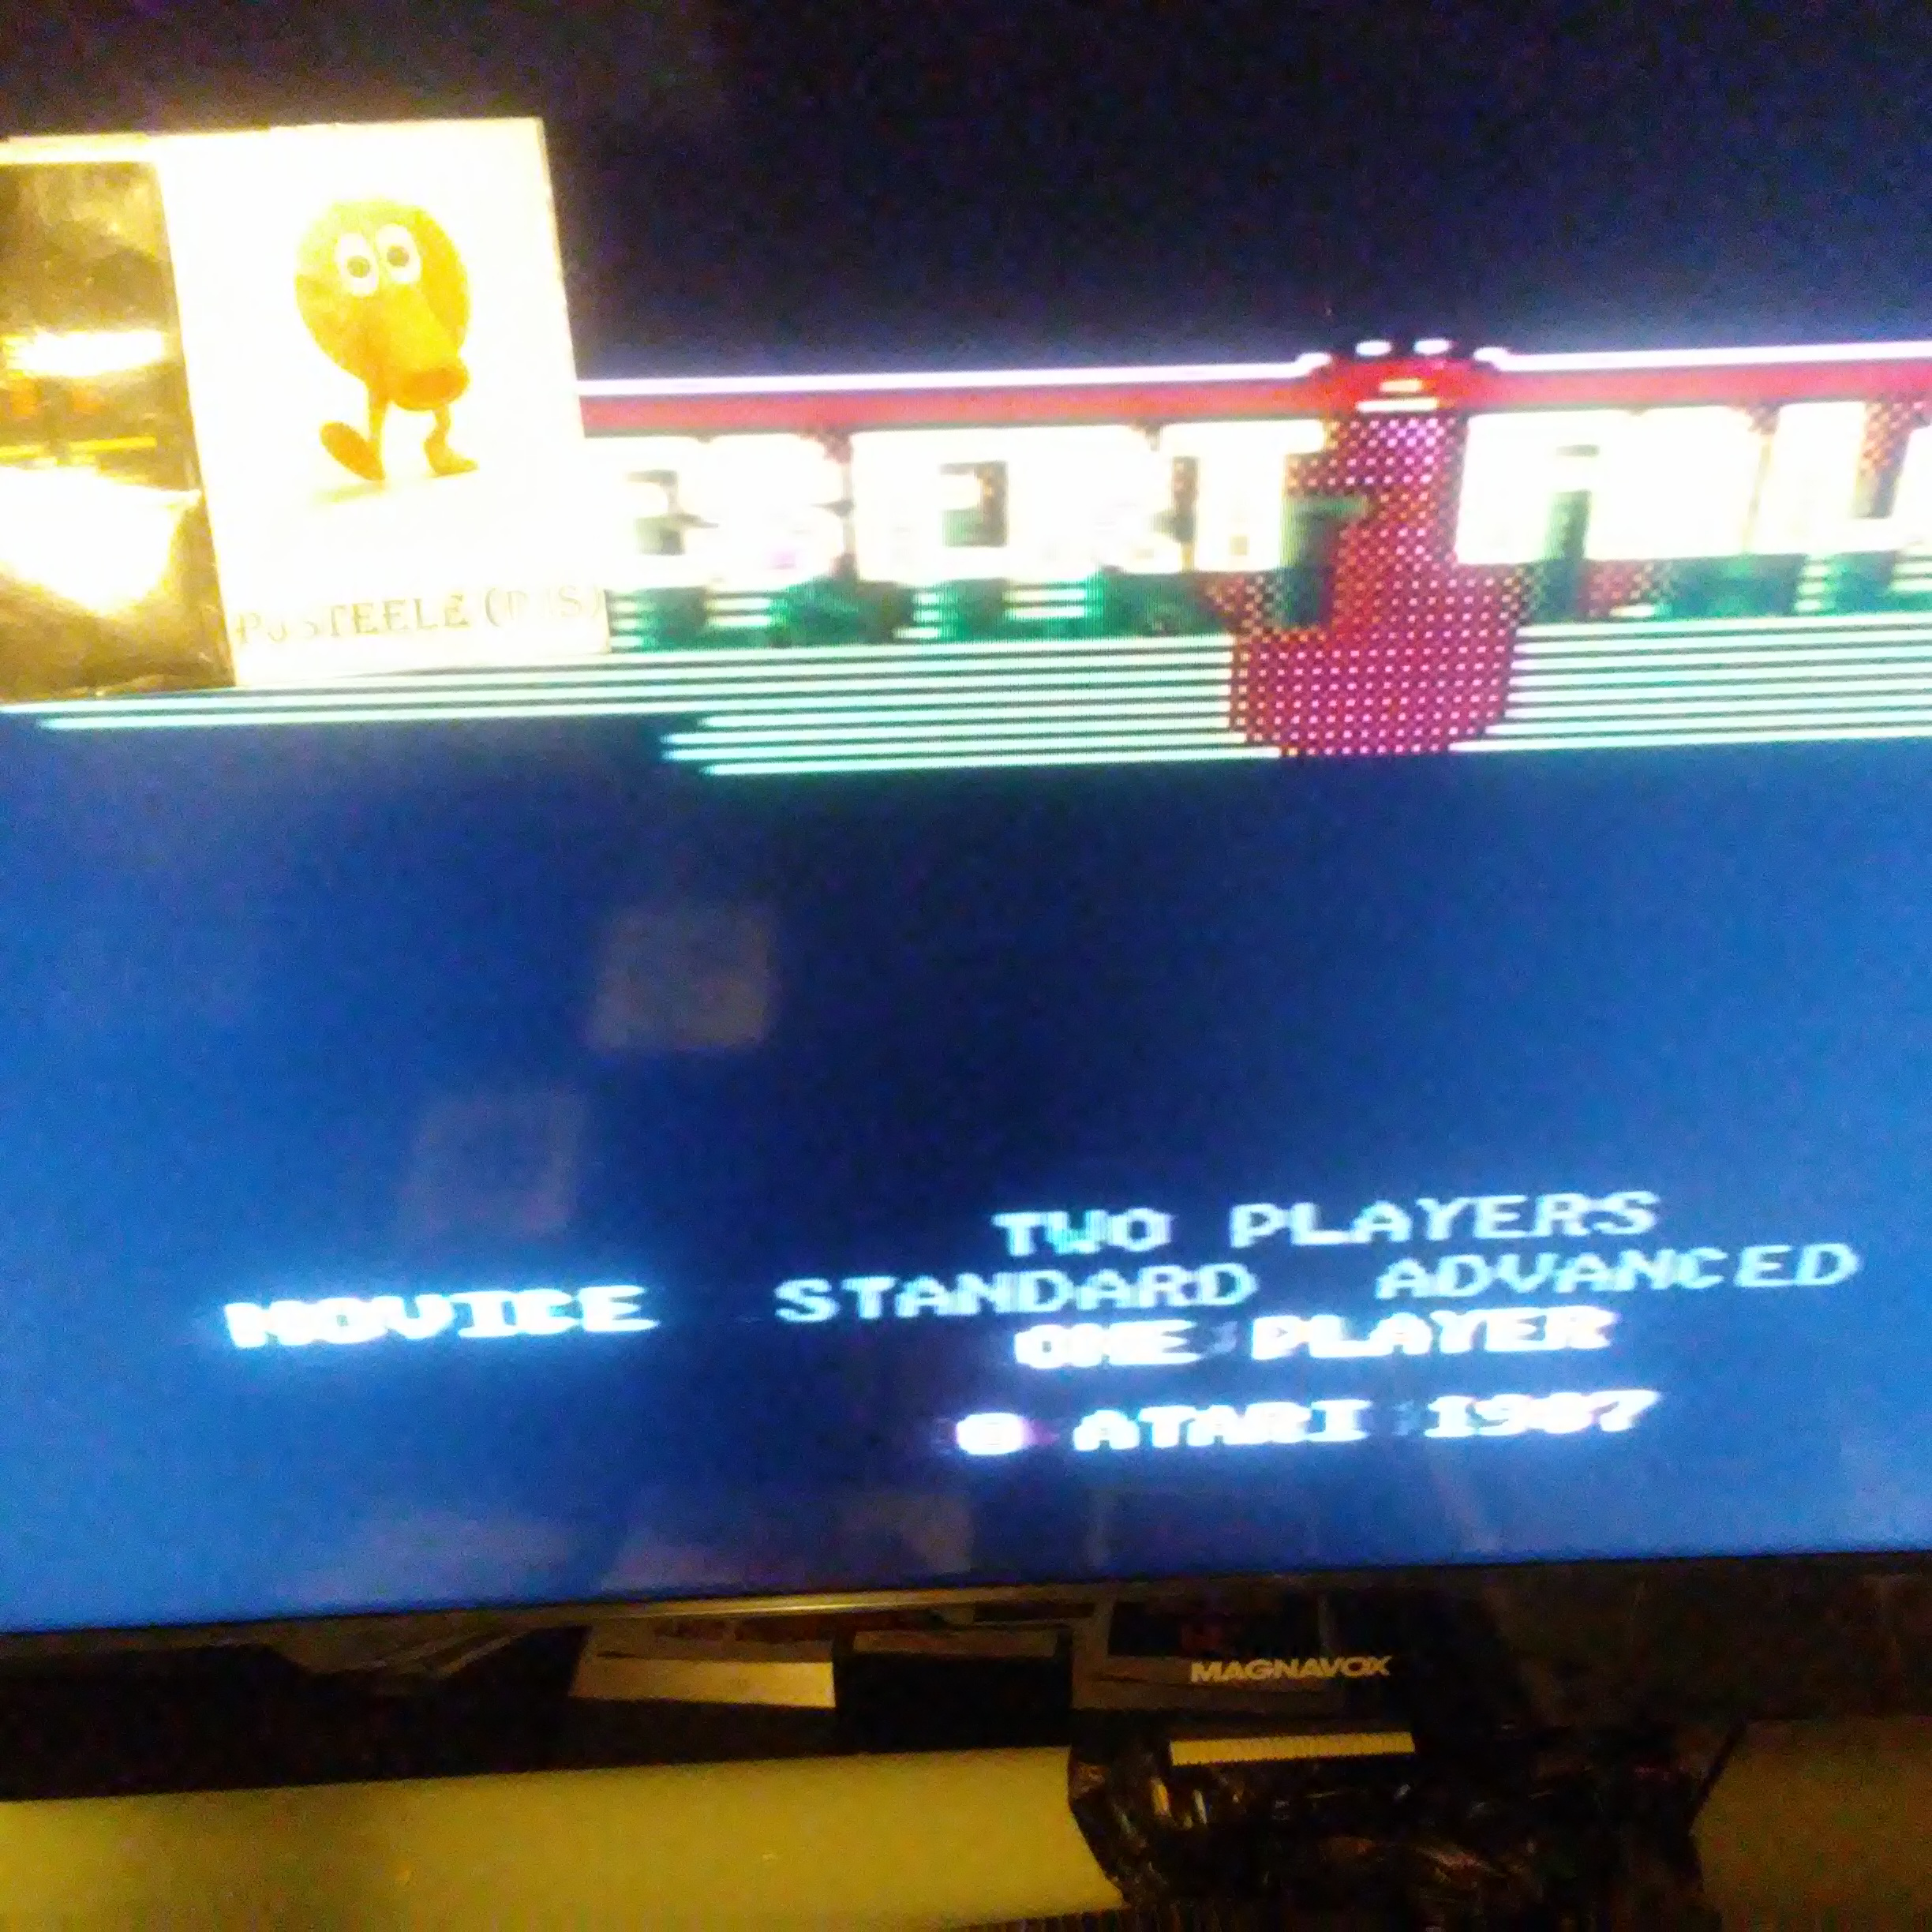 Pjsteele: Desert Falcon: Novice (Atari 7800) 55,540 points on 2018-07-08 12:36:27